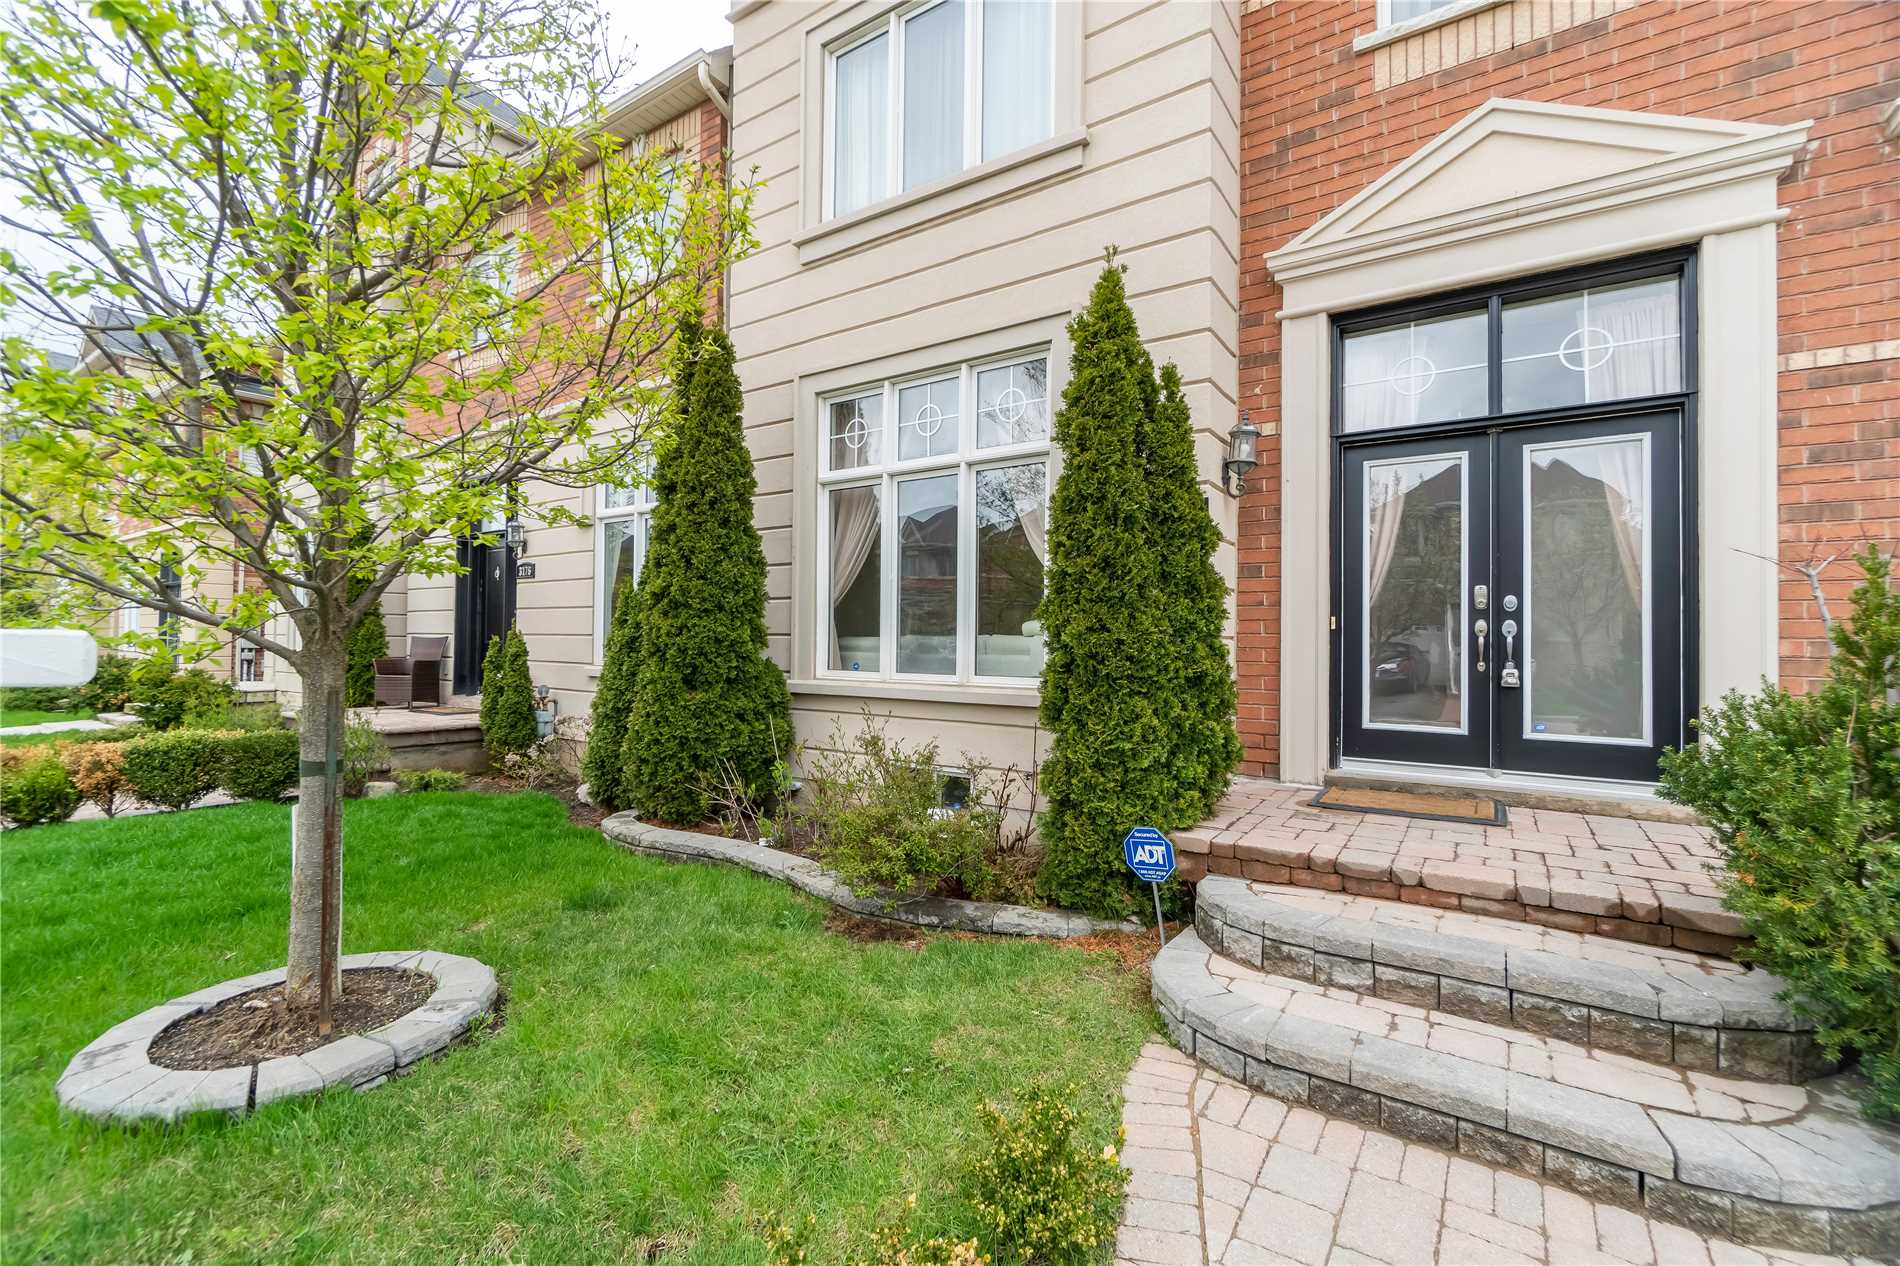 3178 Eclipse Ave&sbquo; Mississauga&sbquo; Ontario L5M7X1 <br>MLS® Number: W4450444<br>For Sale: $934&sbquo;900<br>Bedrooms: 3